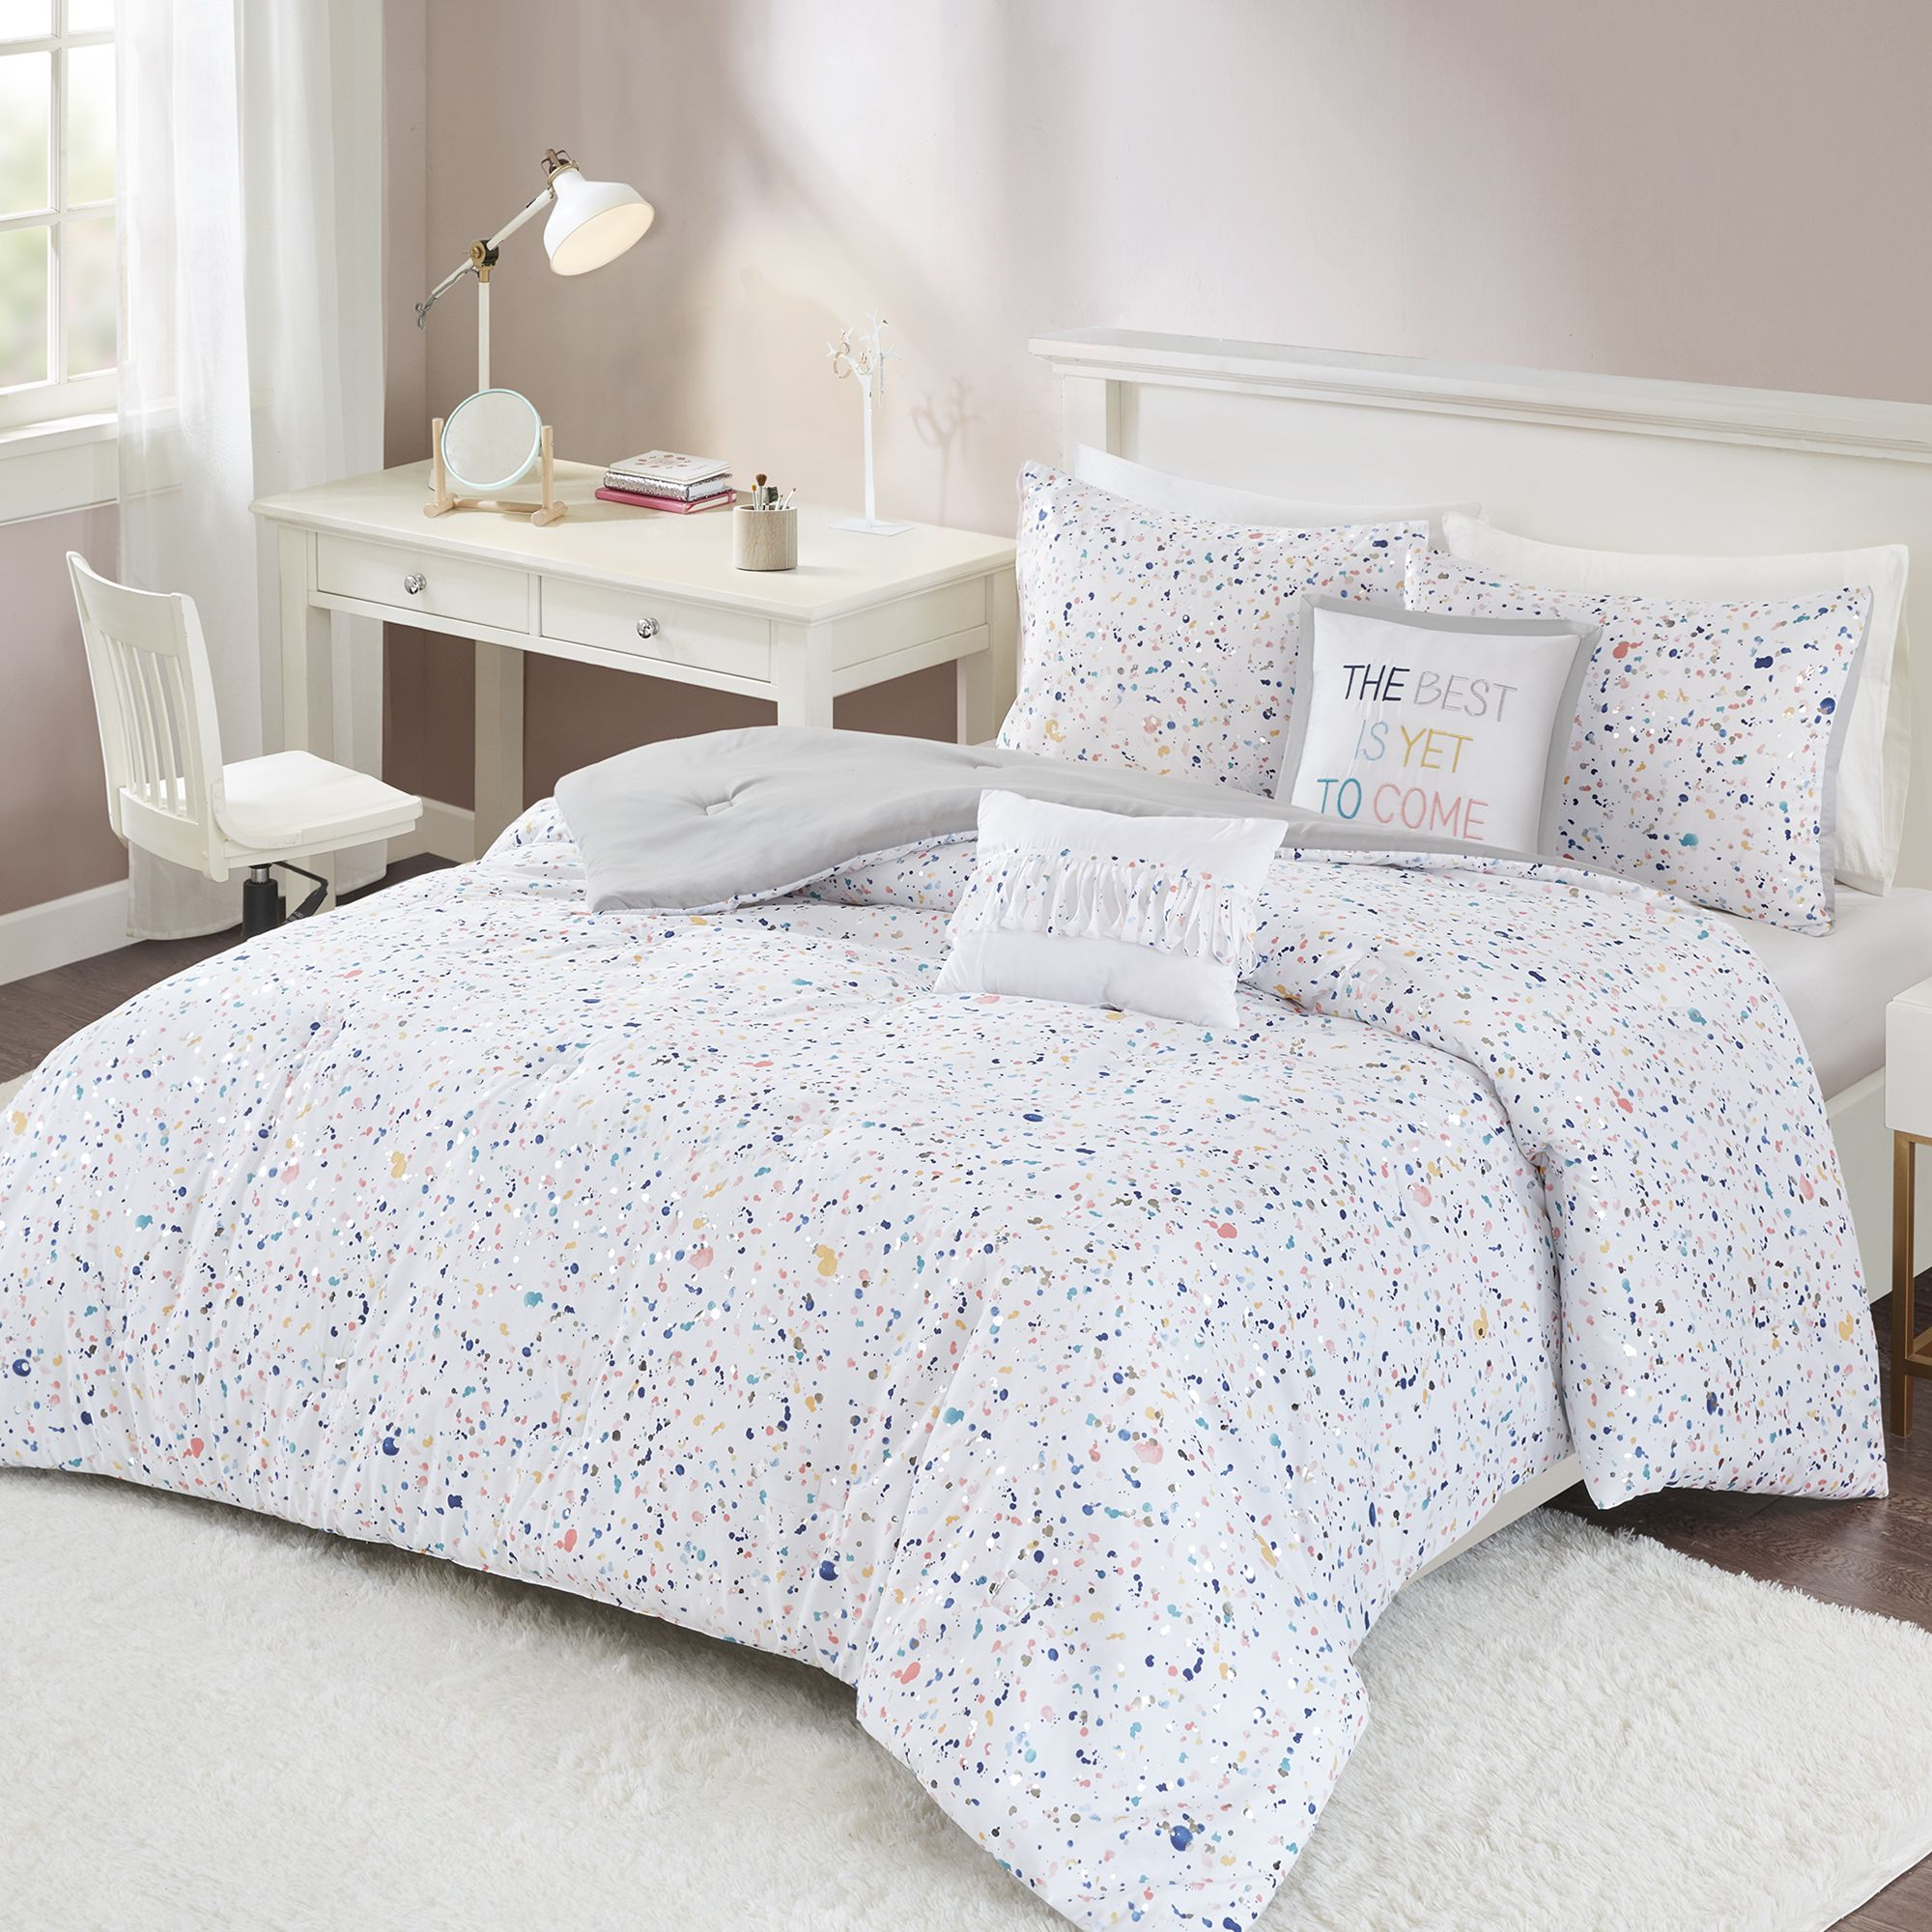 Shop By Brand In 2020 Bed Comforters Comforter Bedding Sets